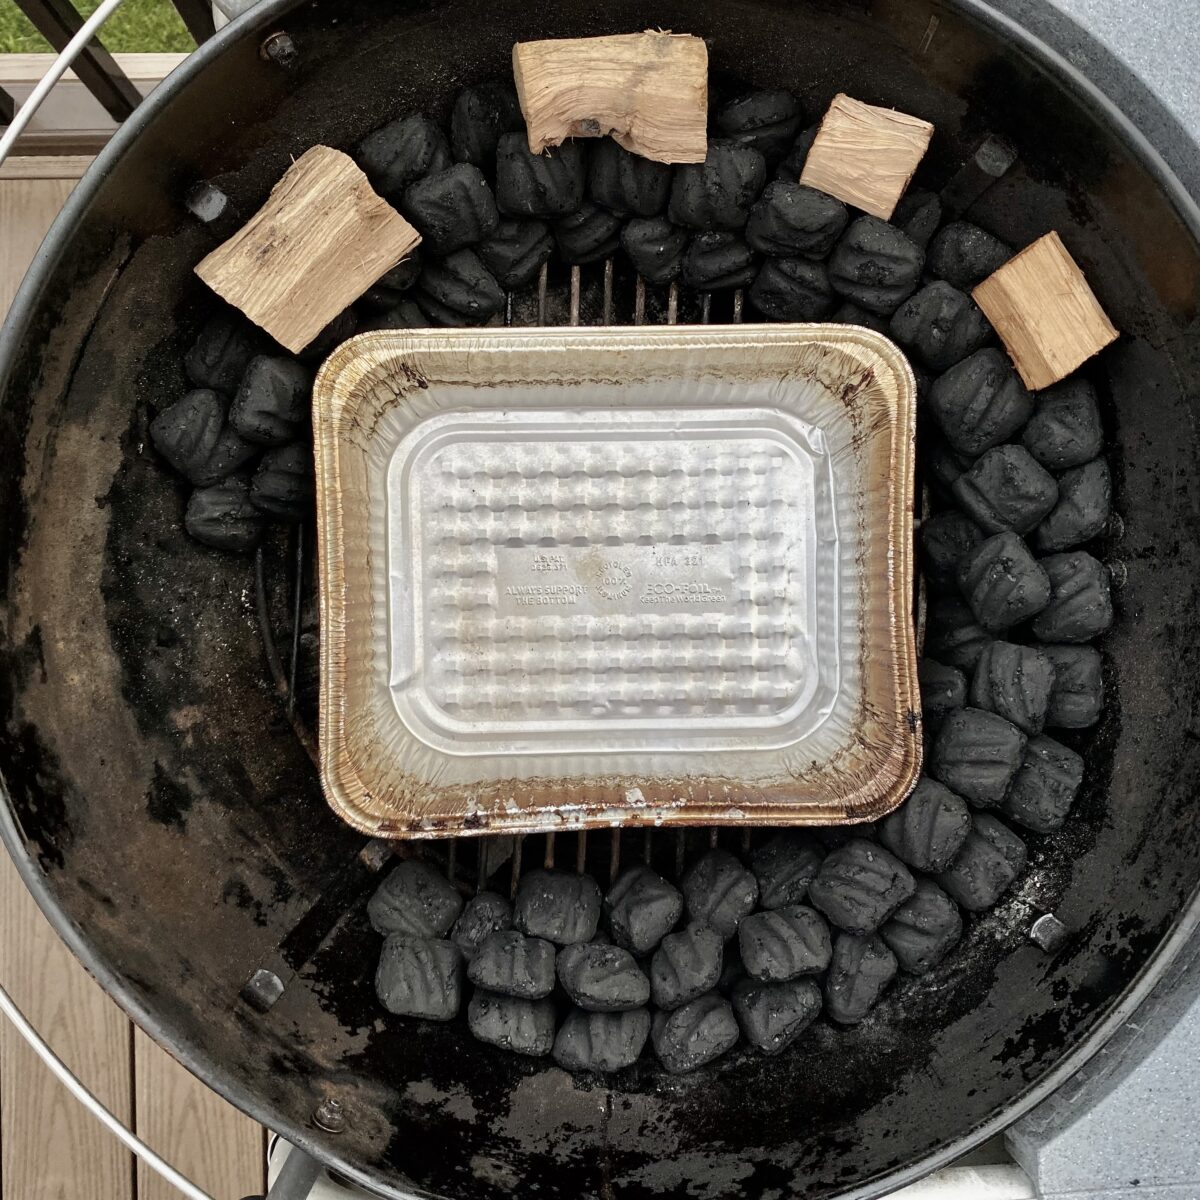 Overhead view showing the water pan placement in the middle of the snake of unlit coals.